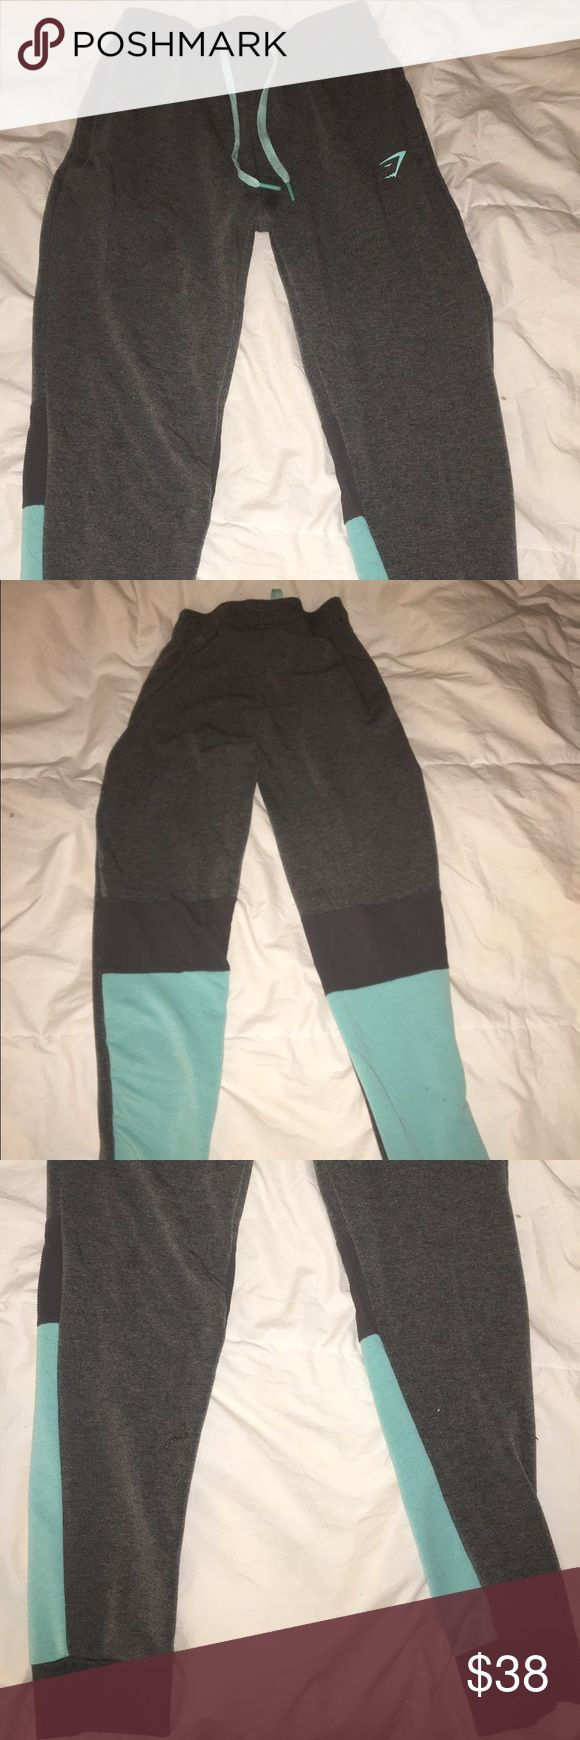 *new edition Gymshark joggers* Newest edition joggers from Gymshark. Size small, worn twice. Love them! Just a little big for me. I'm looking to trade for a size xs or $$$. Firm price, as shipping from Gymshark is pricy. lululemon athletica Pants